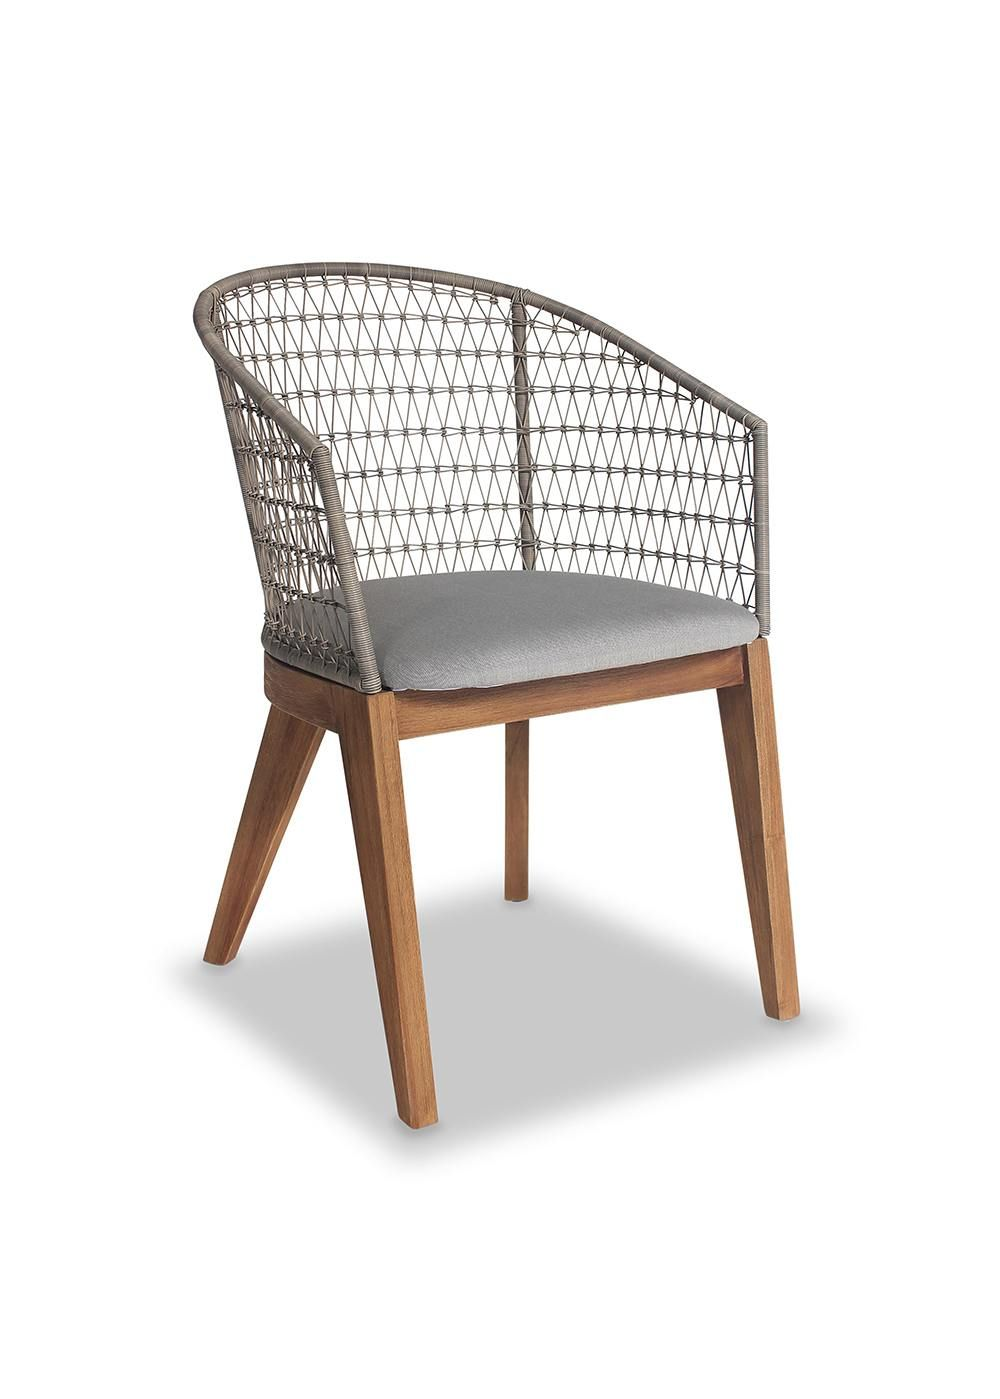 Commercial Grade Furniture Outdoor Furniture And